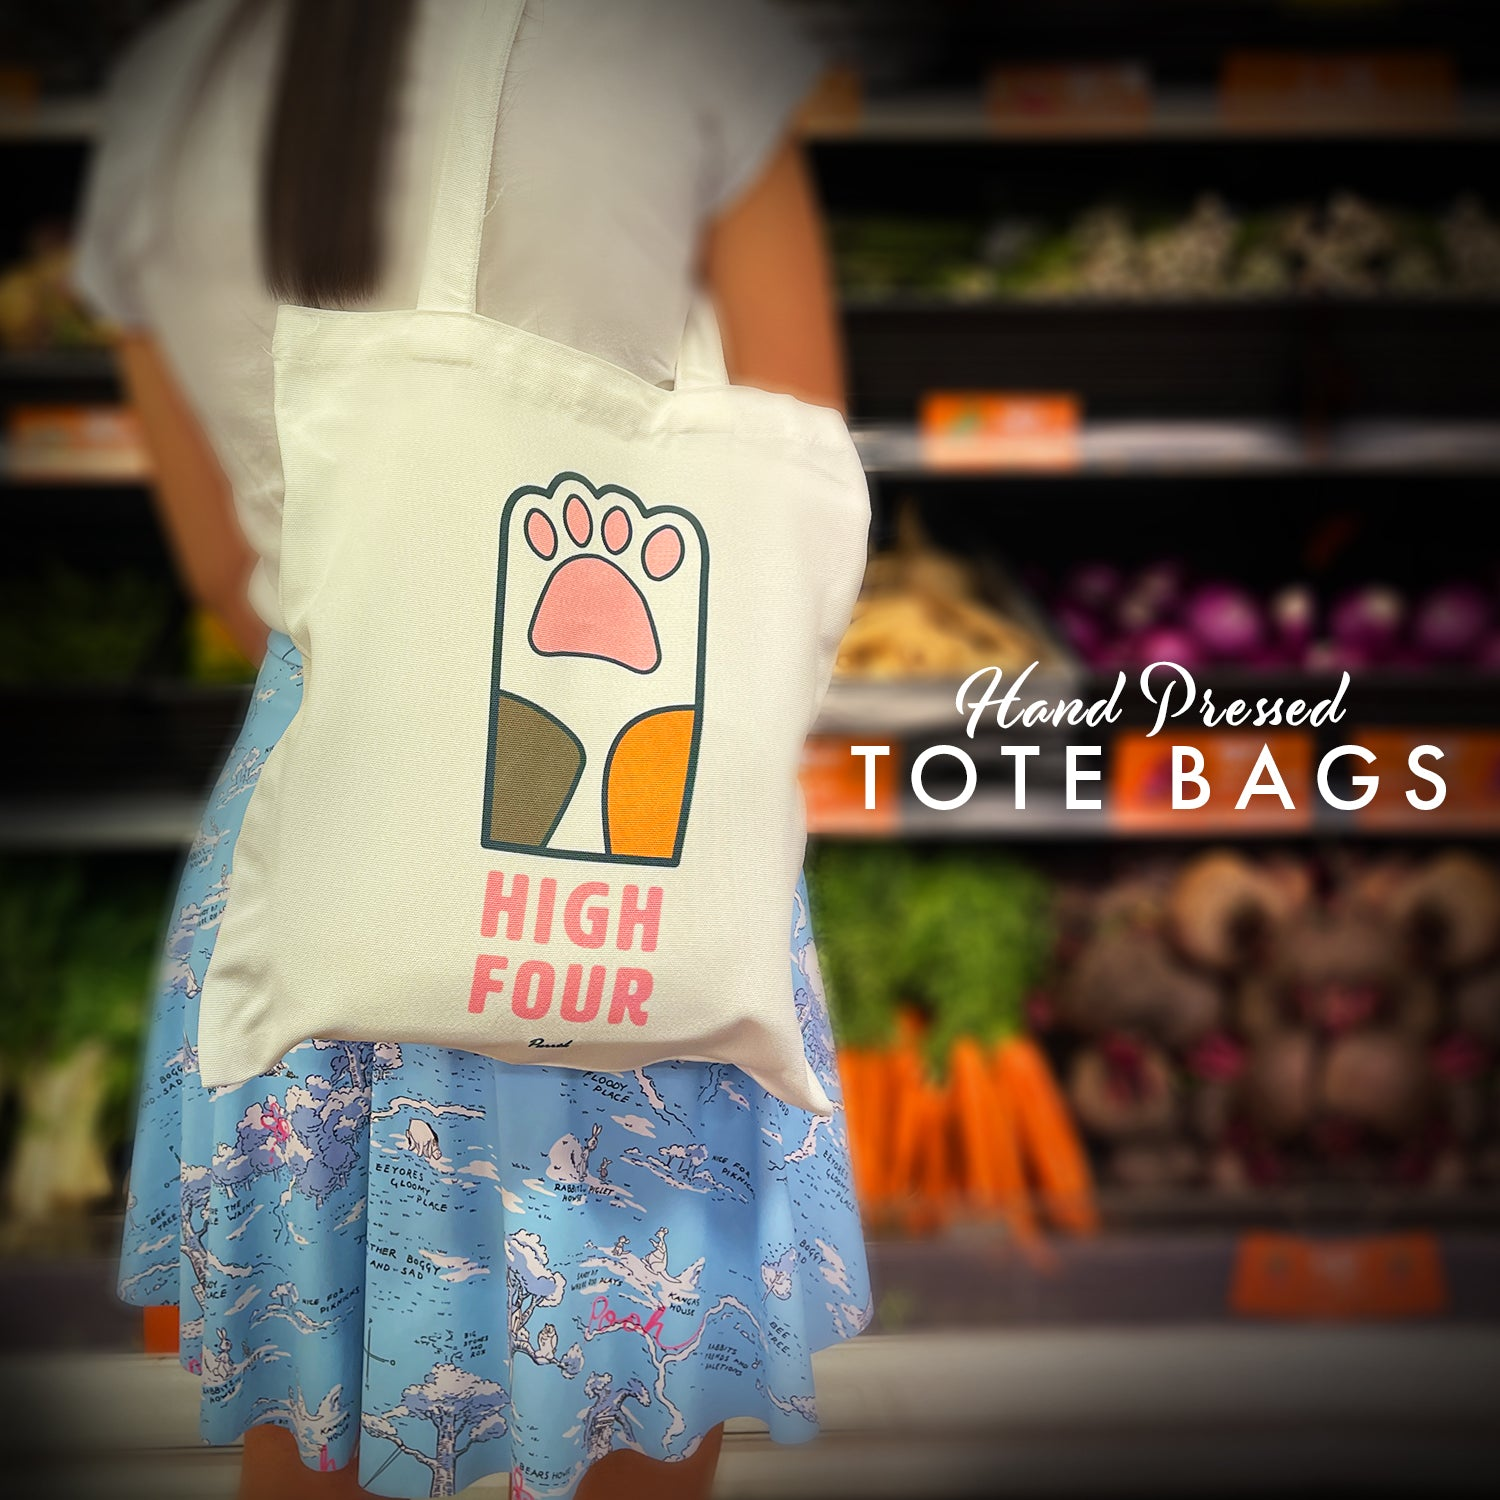 Hand-pressed Tote Bags